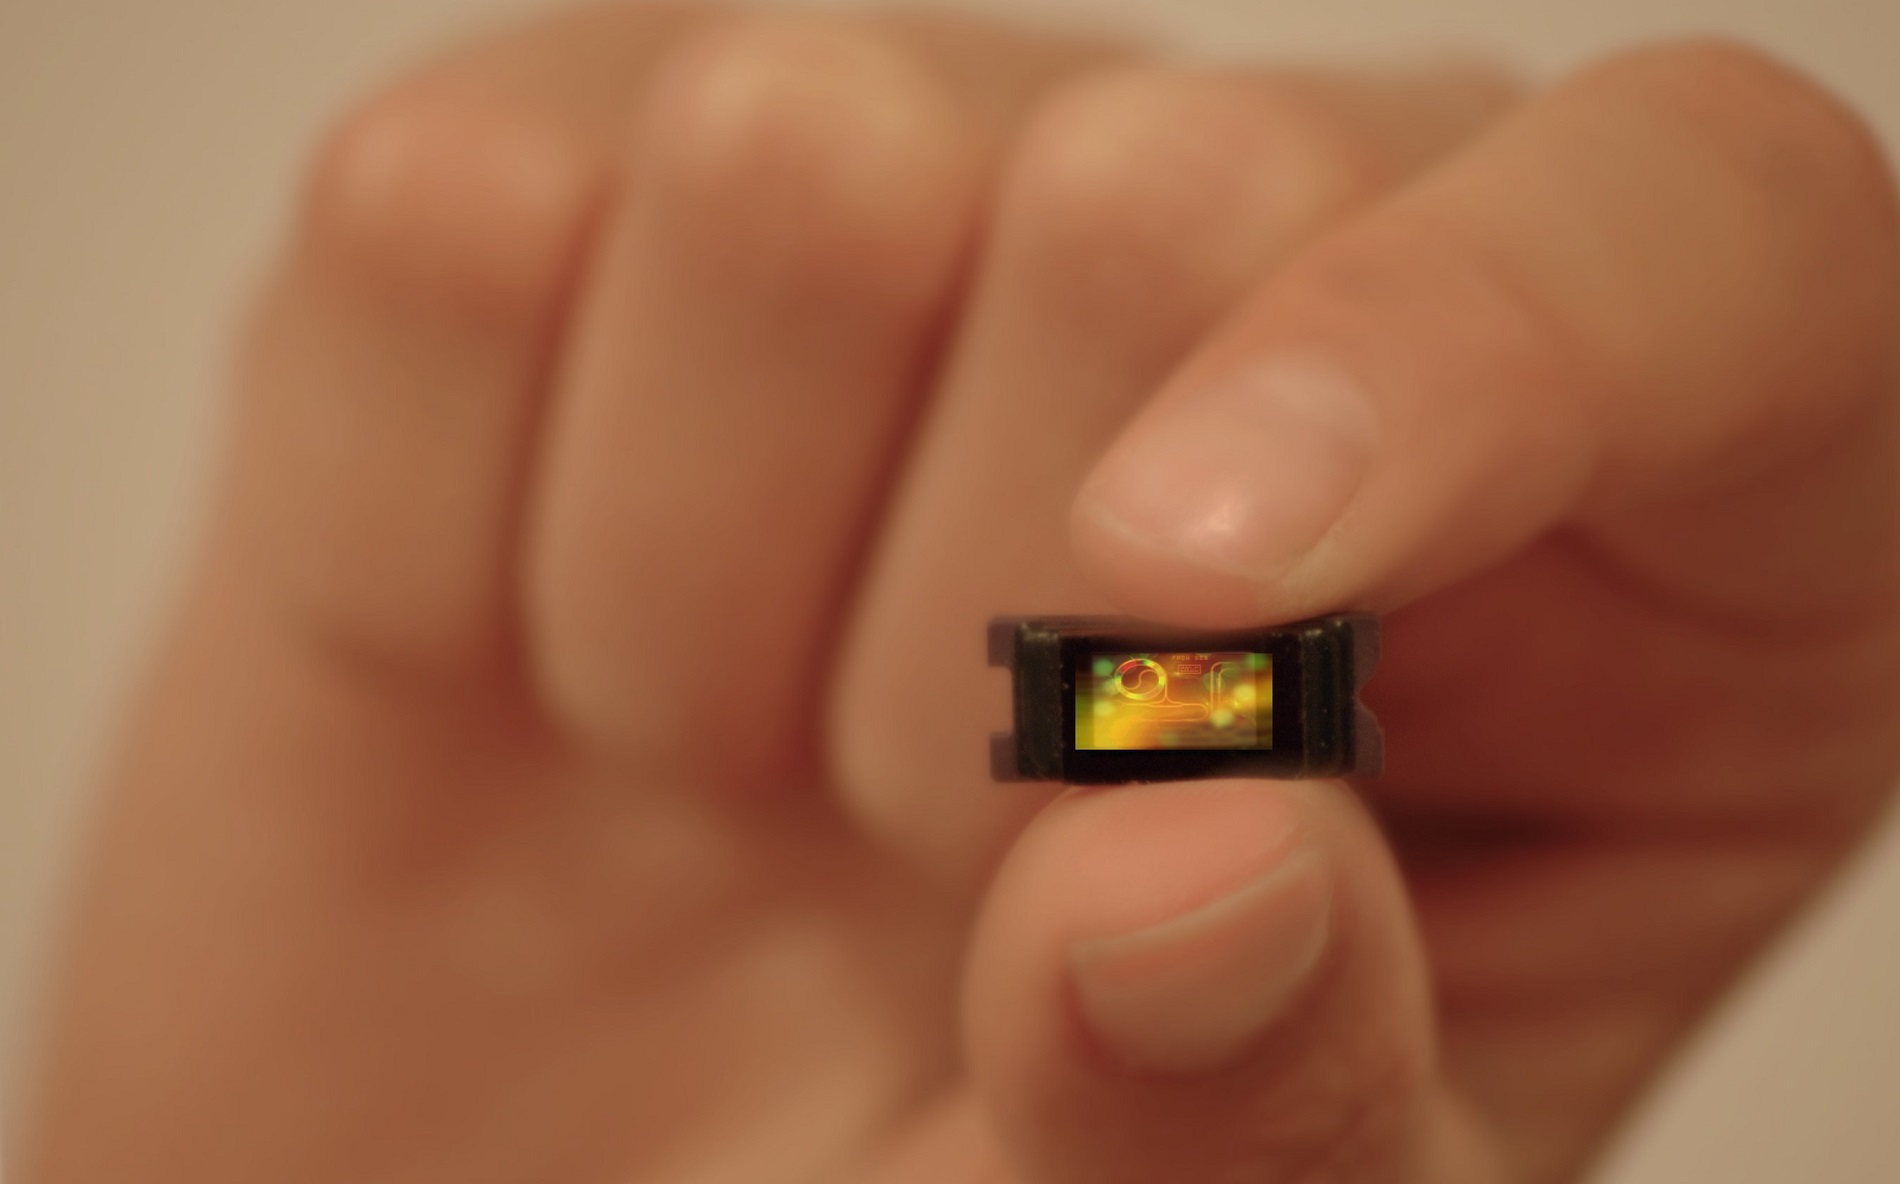 At CES, SiLC will demonstrate its 4D Vision Sensor Chip Enabling a Range-Extended, Eye-Safe Integrated LiDAR